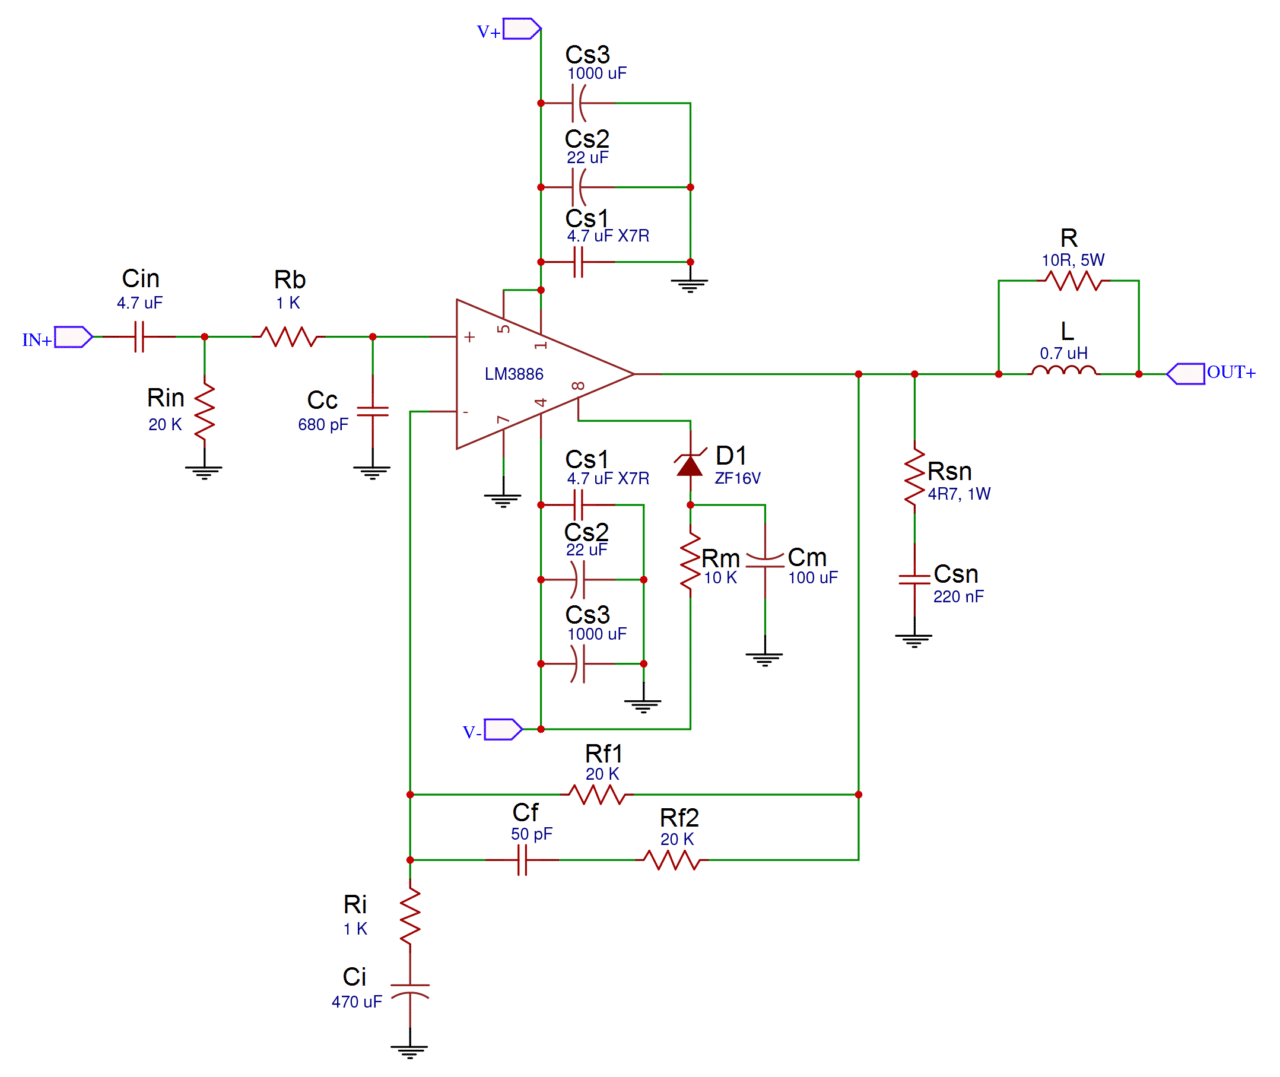 A Complete Guide To Design And Build Hi Fi Lm3886 Amplifier Audioamp Board The Features Power Lm386 Find Values For Components In Circuit Ill Be Using Schematic Below Its Basically Same As One Datasheet